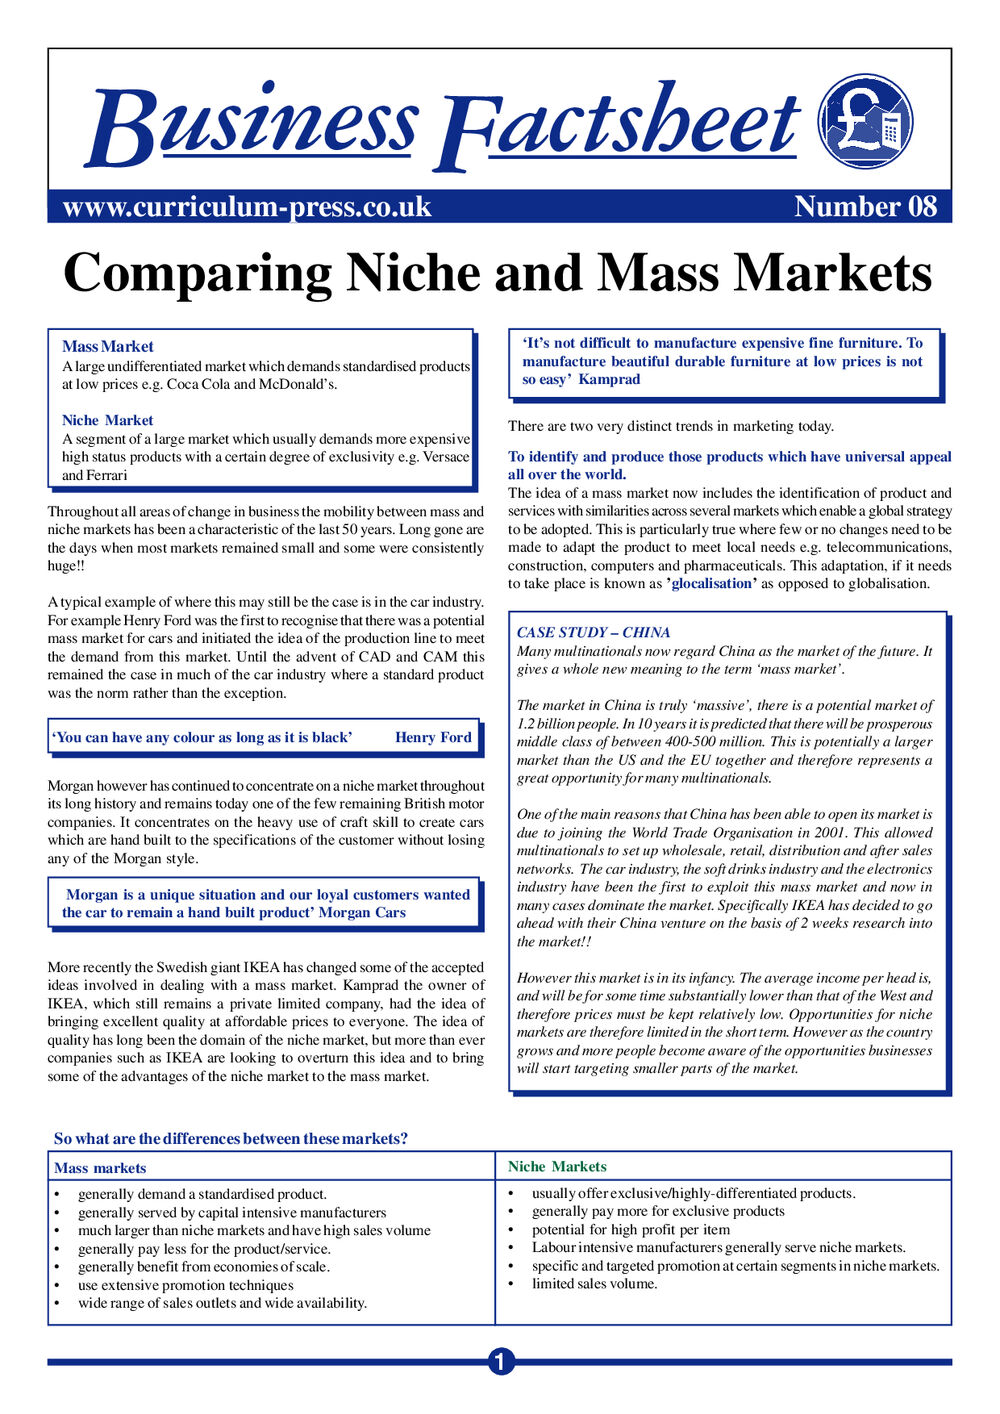 08 Niche And Mass Market